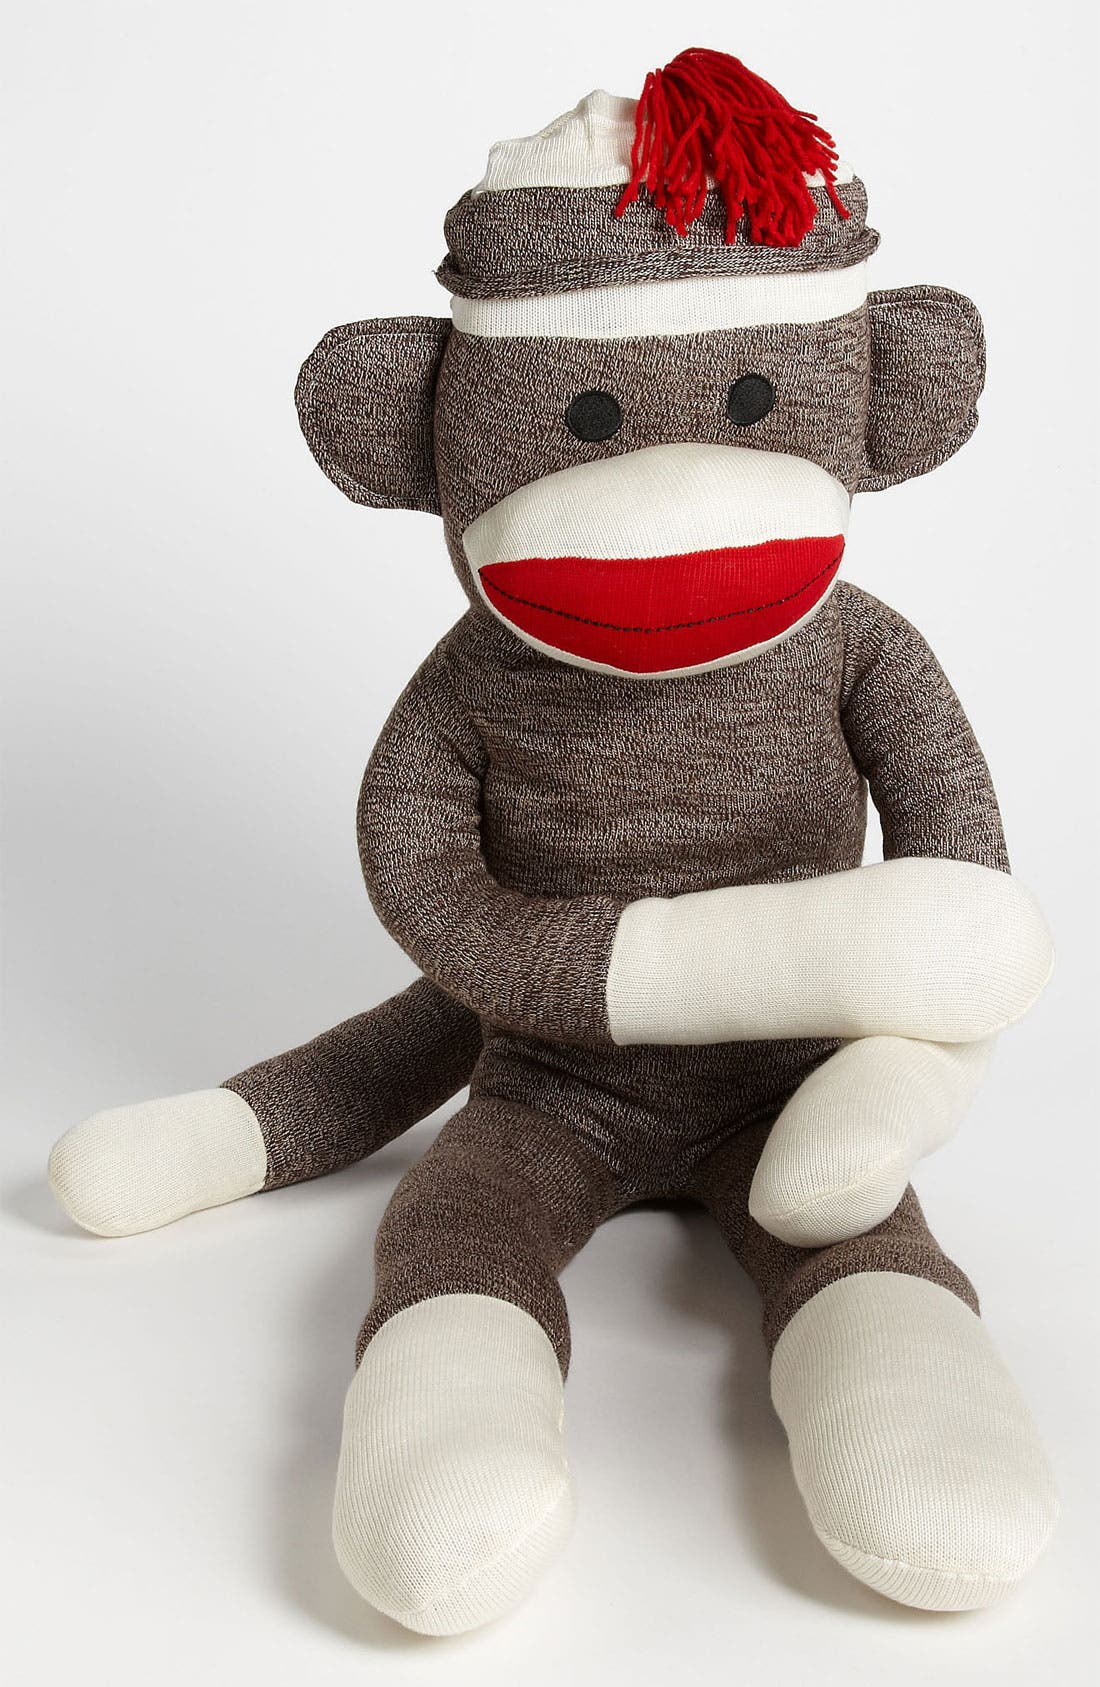 Main Image - Schylling Jumbo Sock Monkey Stuffed Animal